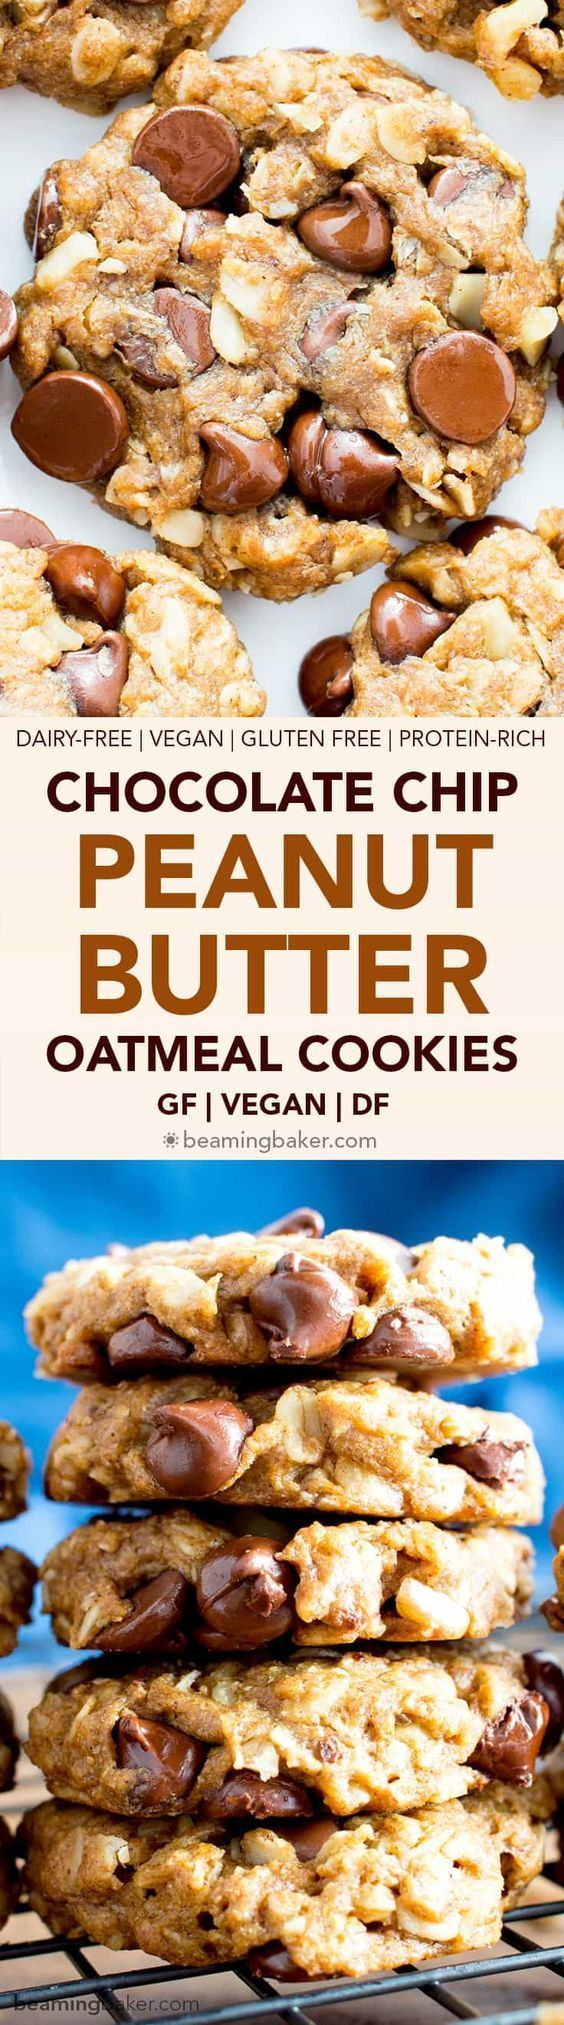 Vegan and Gluten Free Peanut Butter Chocolate Chip Oatmeal Cookies